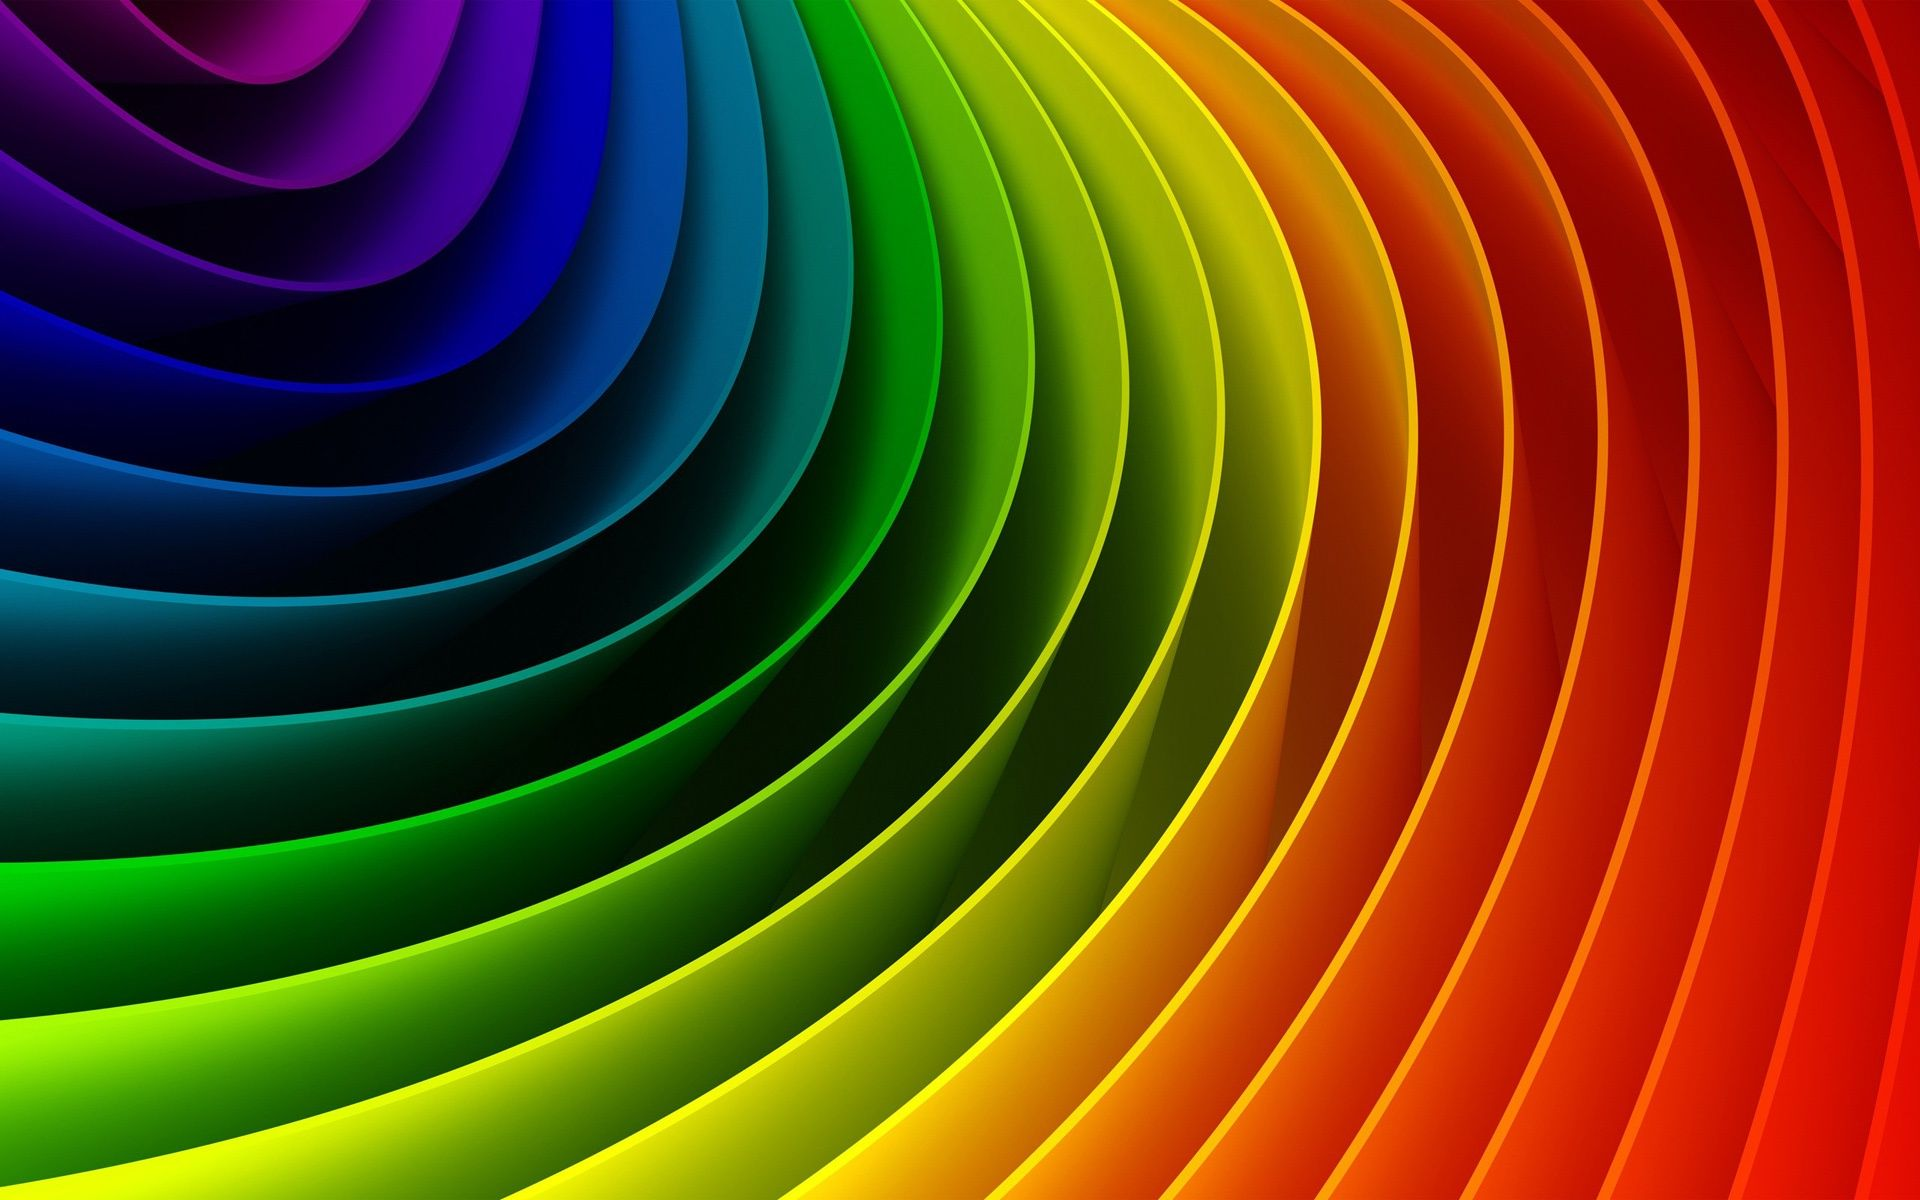 the rainbow and colored girls essay Read this essay on play analysis for colored girls come browse our large digital warehouse of free sample essays get the knowledge you need in order to pass your.